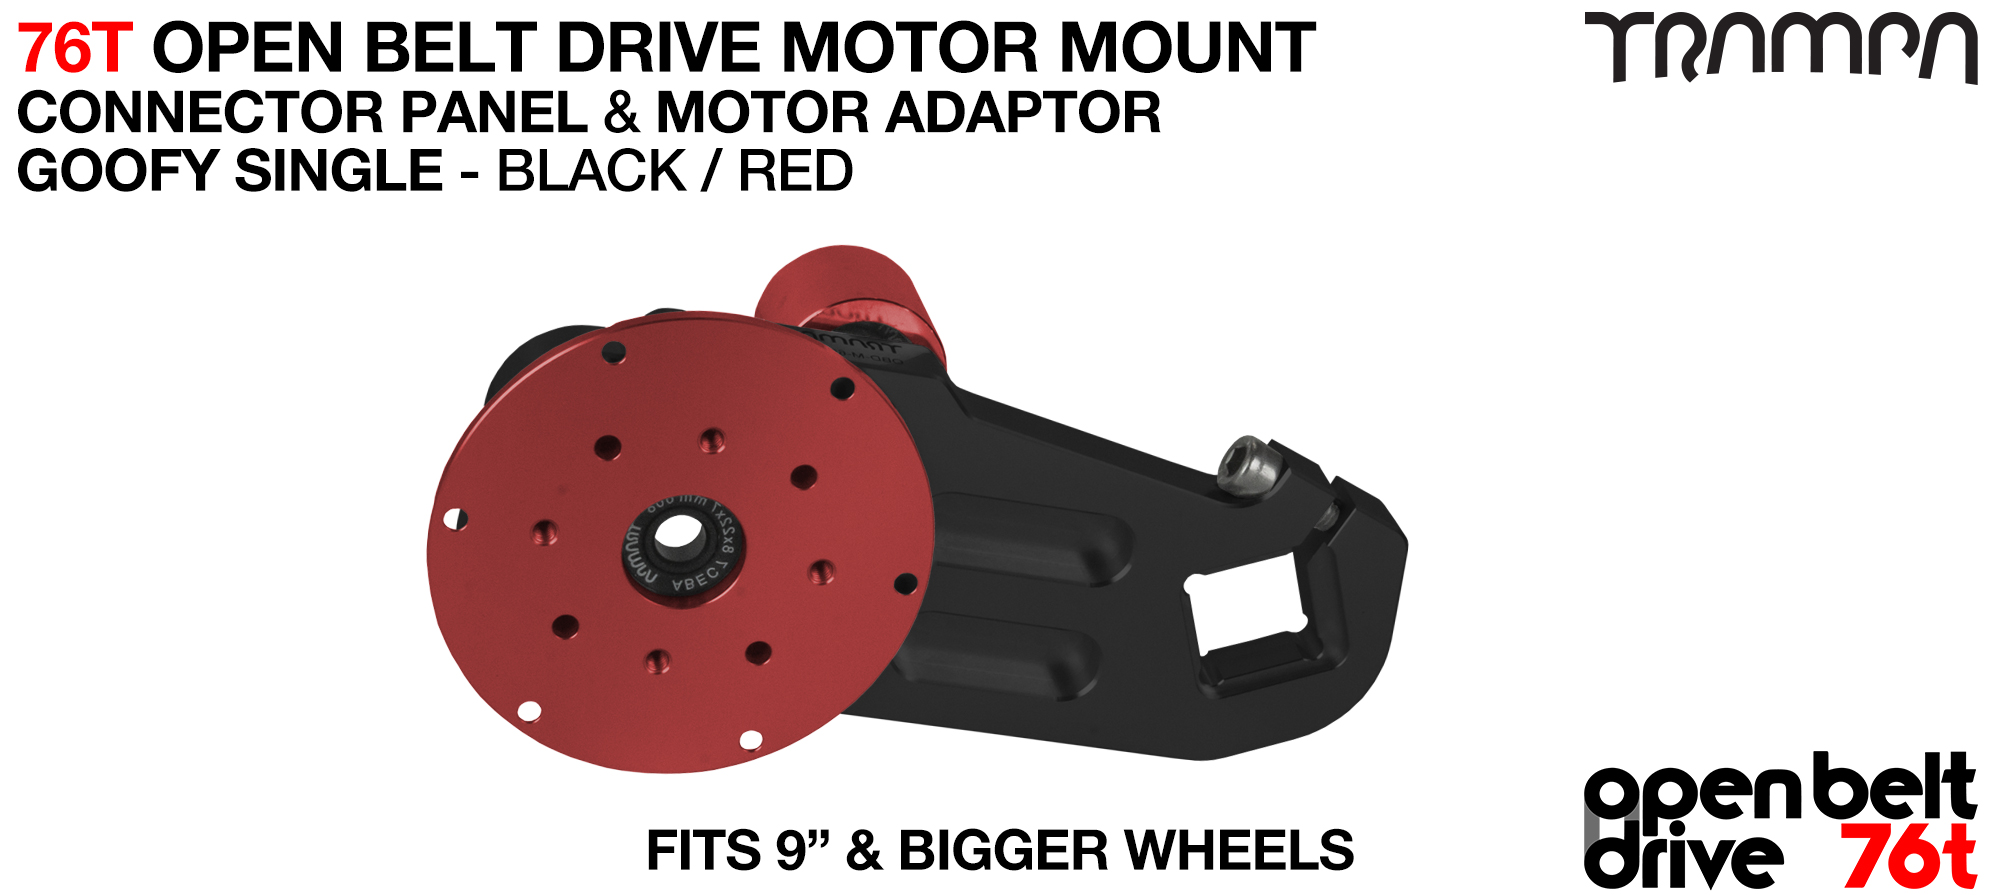 76T Open Belt Drive Motor Mount & Motor Adaptor - SINGLE RED